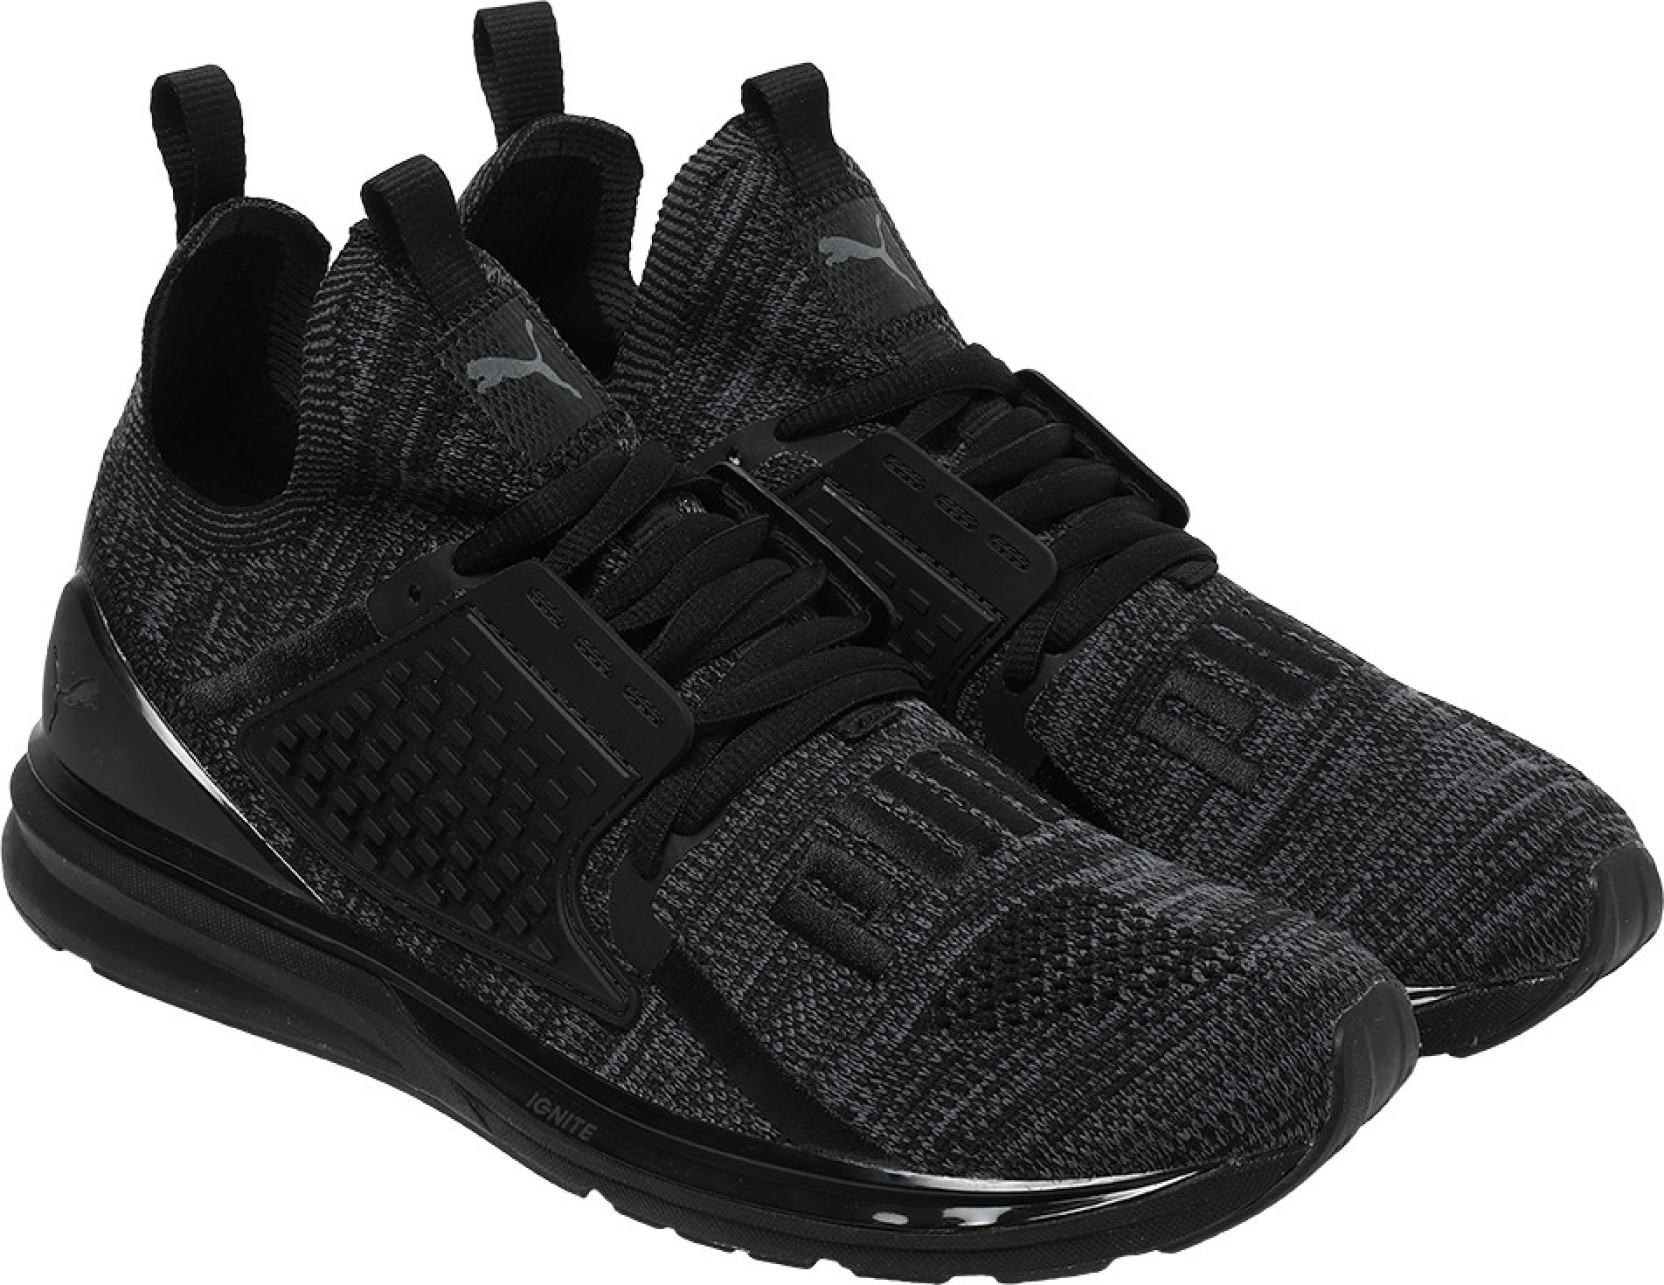 online store d87e4 c9e7d Puma IGNITE Limitless 2 evoKNIT Running Shoe For Men